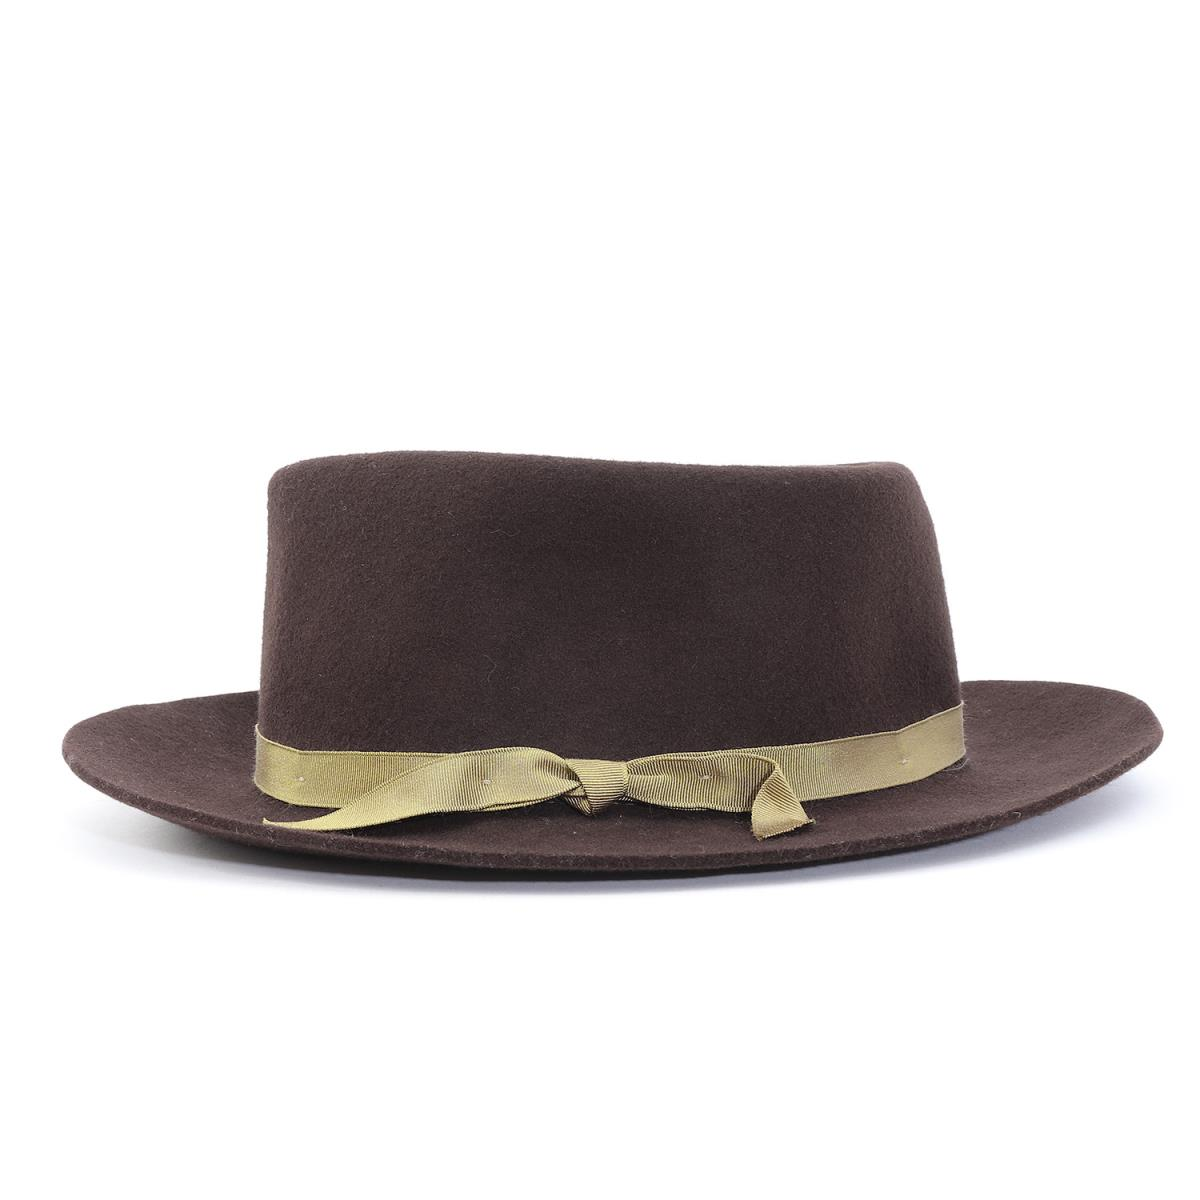 f48b8ec8f EFFANEM (エファネム) wool crusher hat (CRUSHER HAT) brown 7 3/8(59cm)